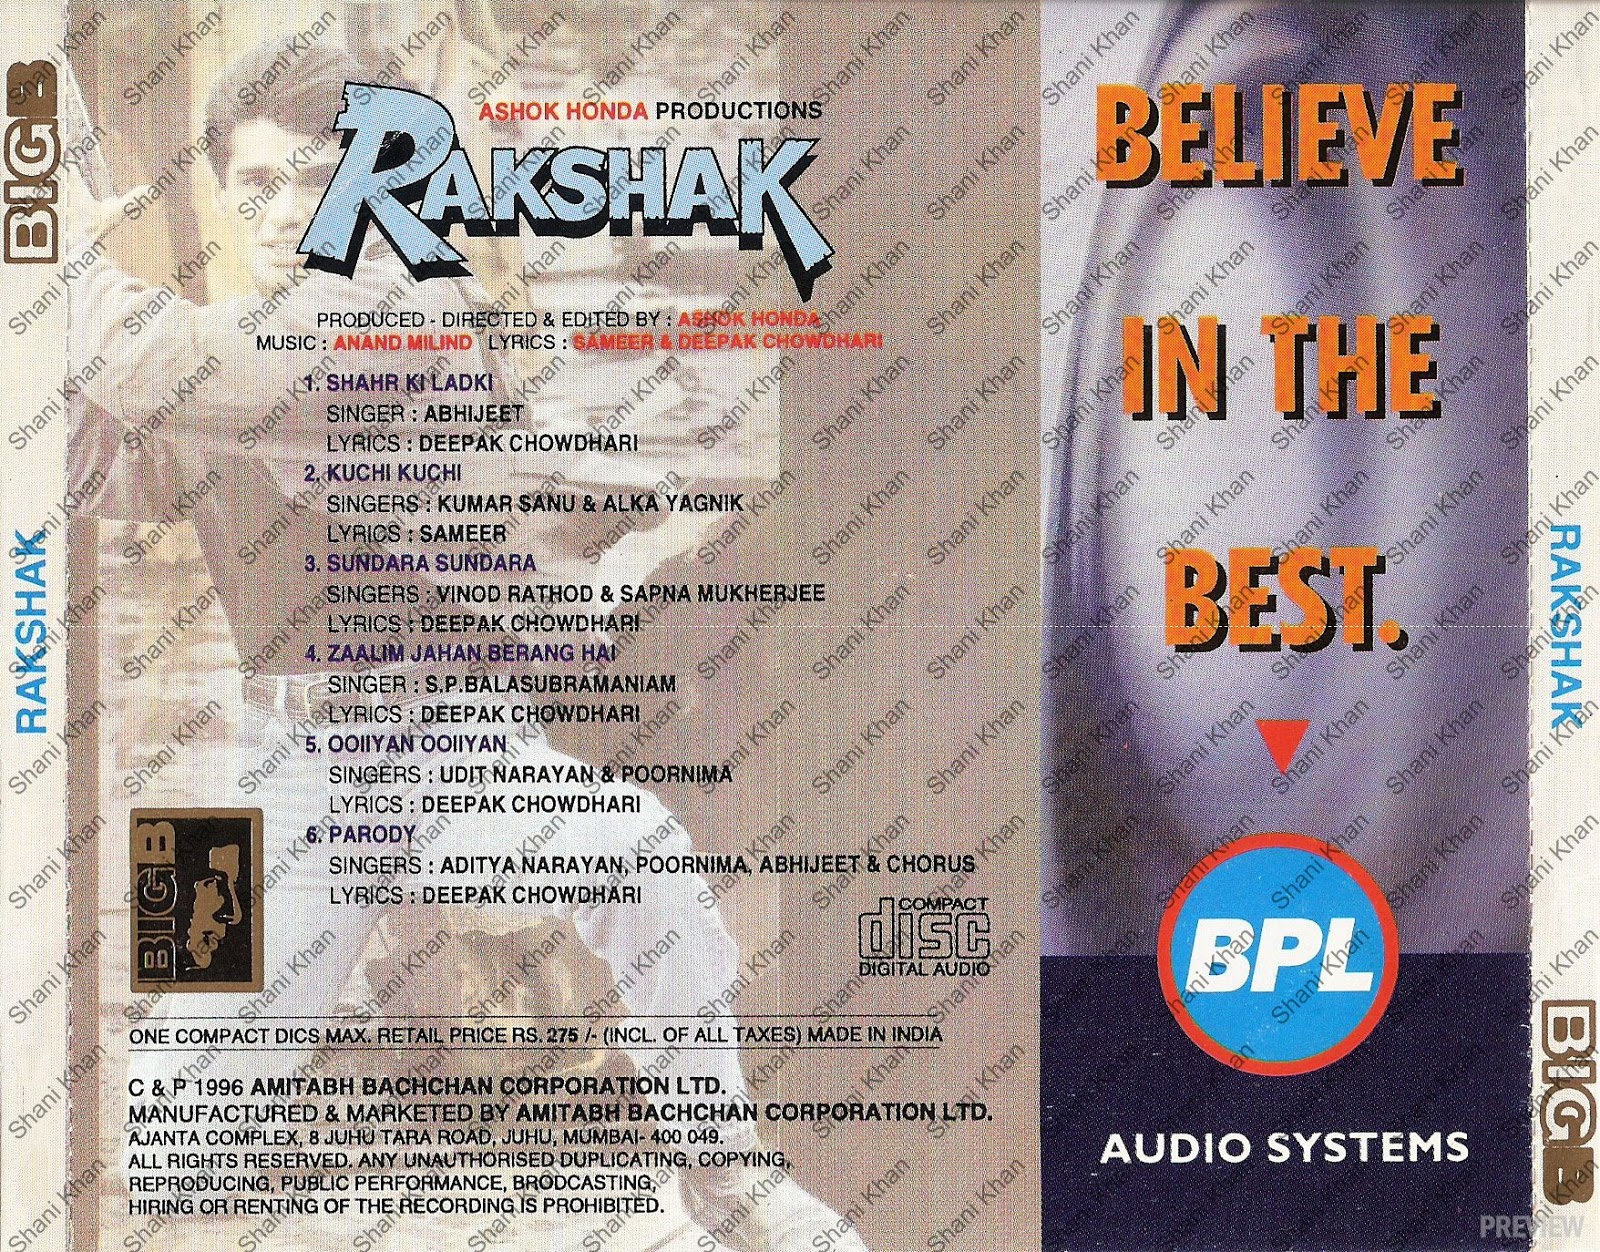 Rakshak 1996 Mp3 Songs Supercross 2005 Movie Download